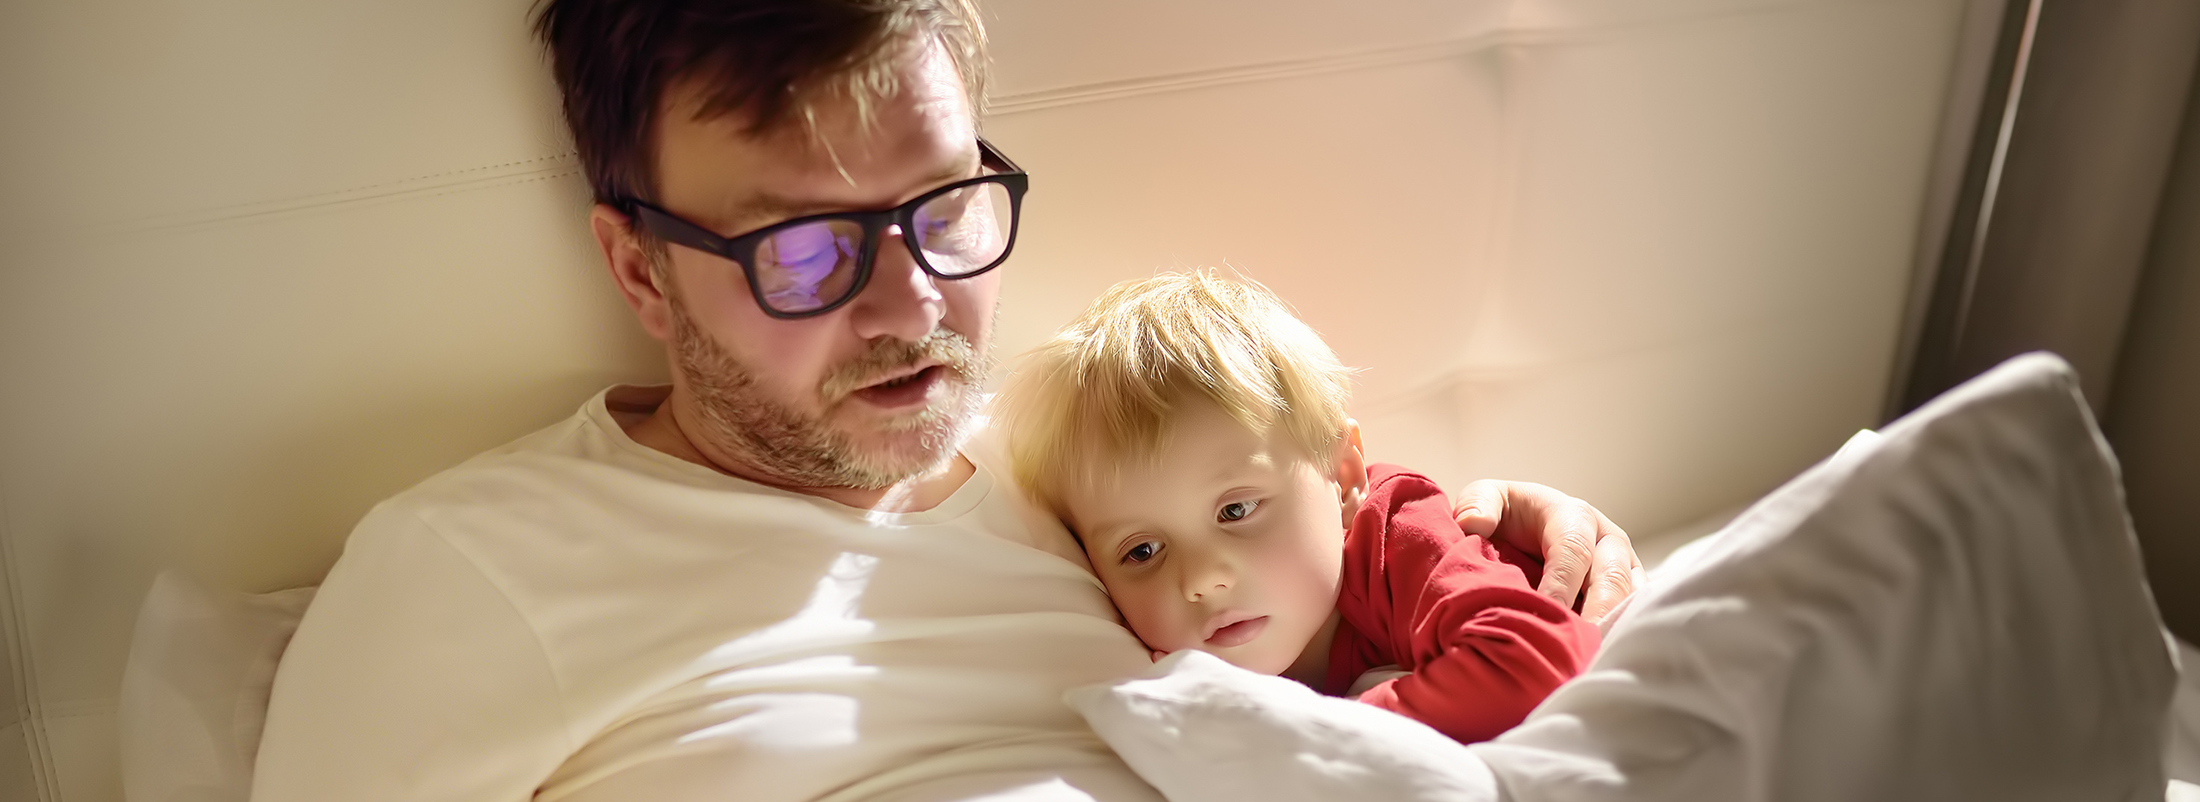 How to Help Your Child Get a Good Night's Sleep